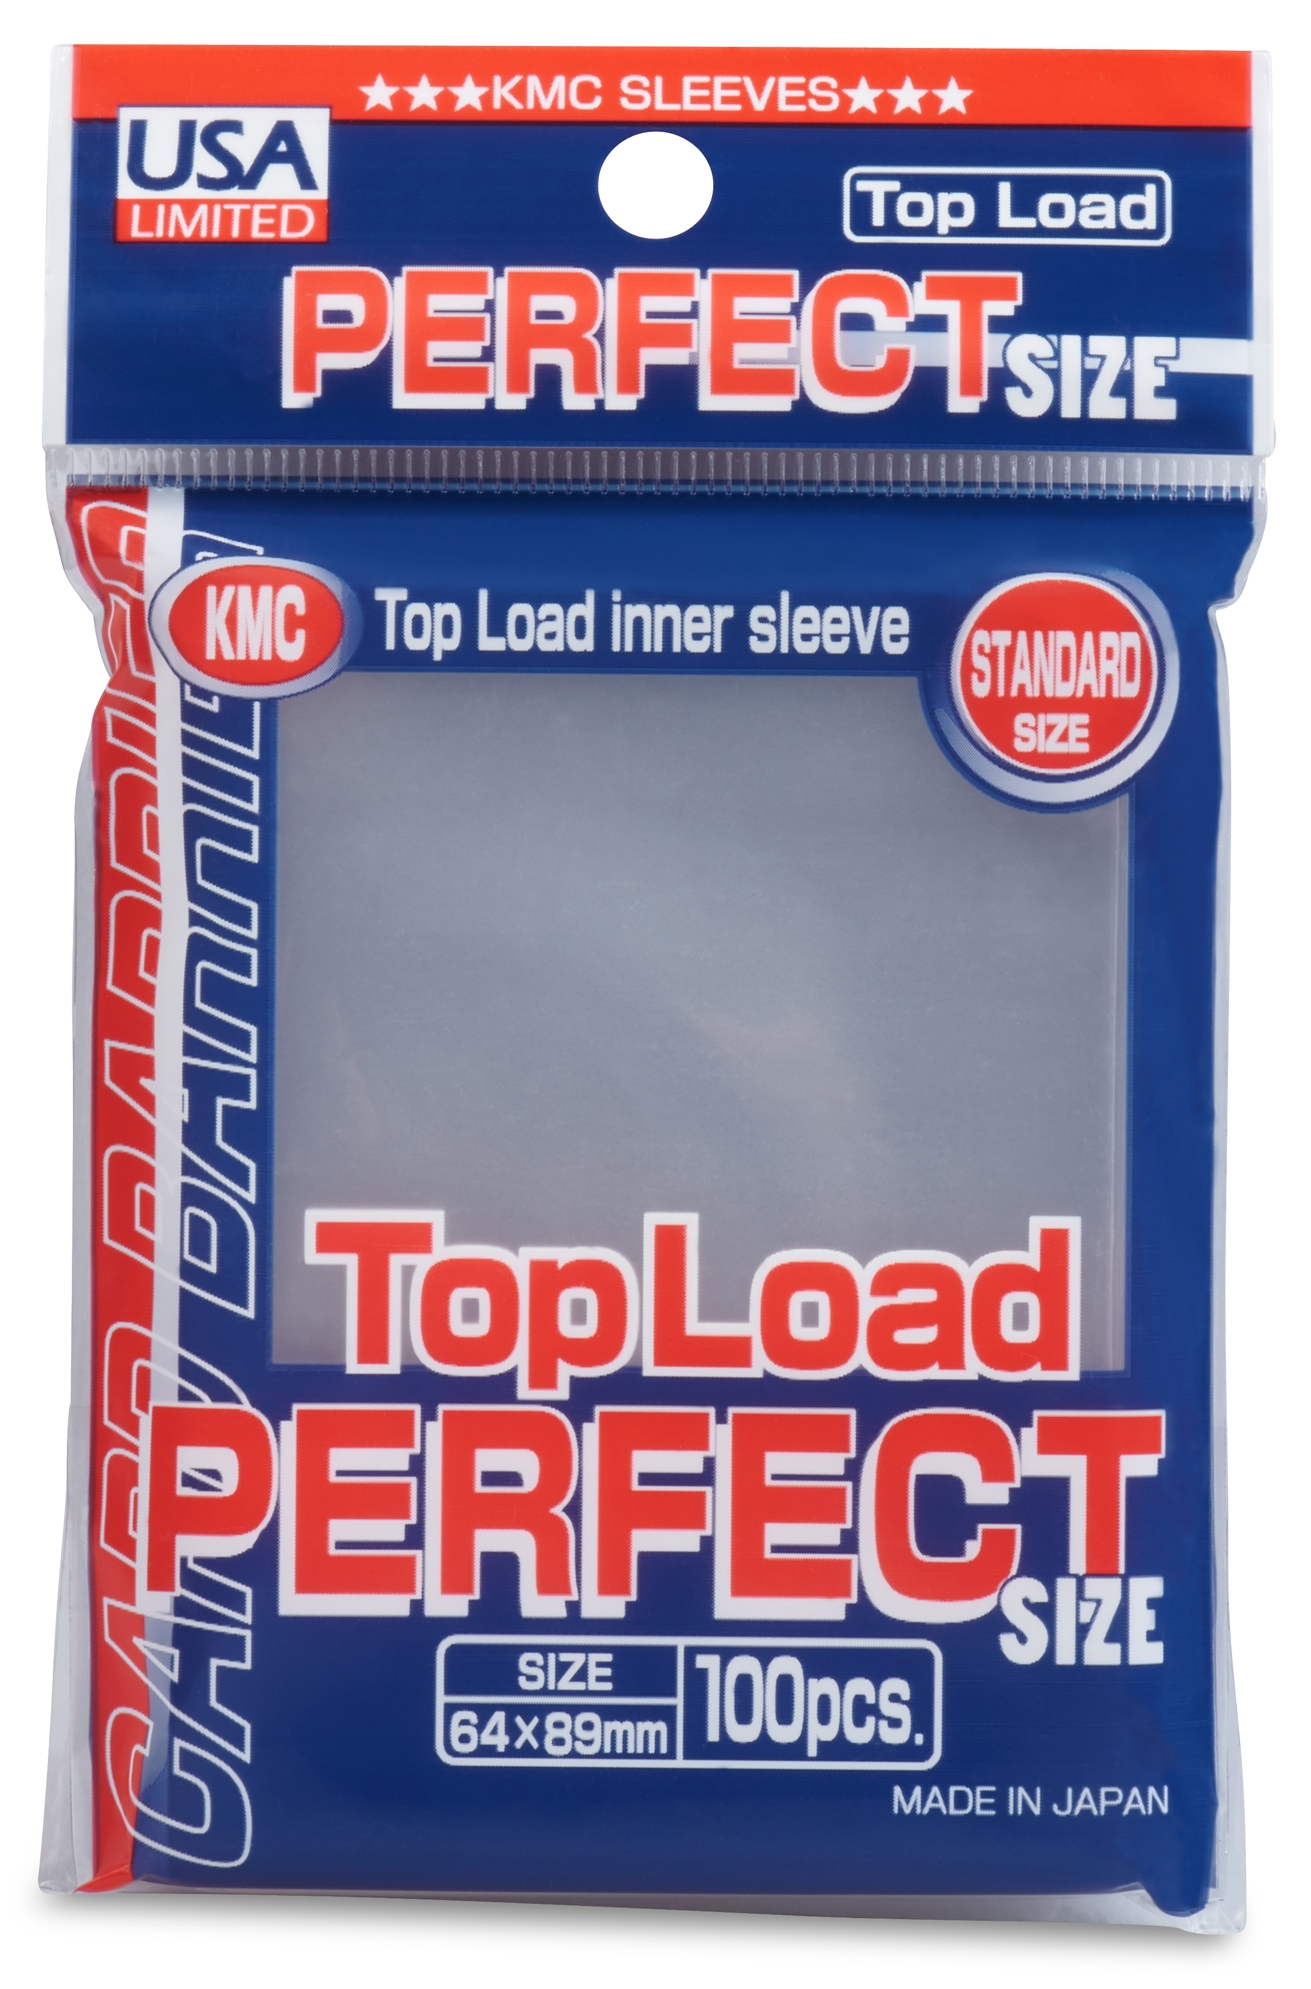 fde1d6c47d6e KMC Standard Size Sleeves - Perfect Size (Perfect Fit) [10 packs]